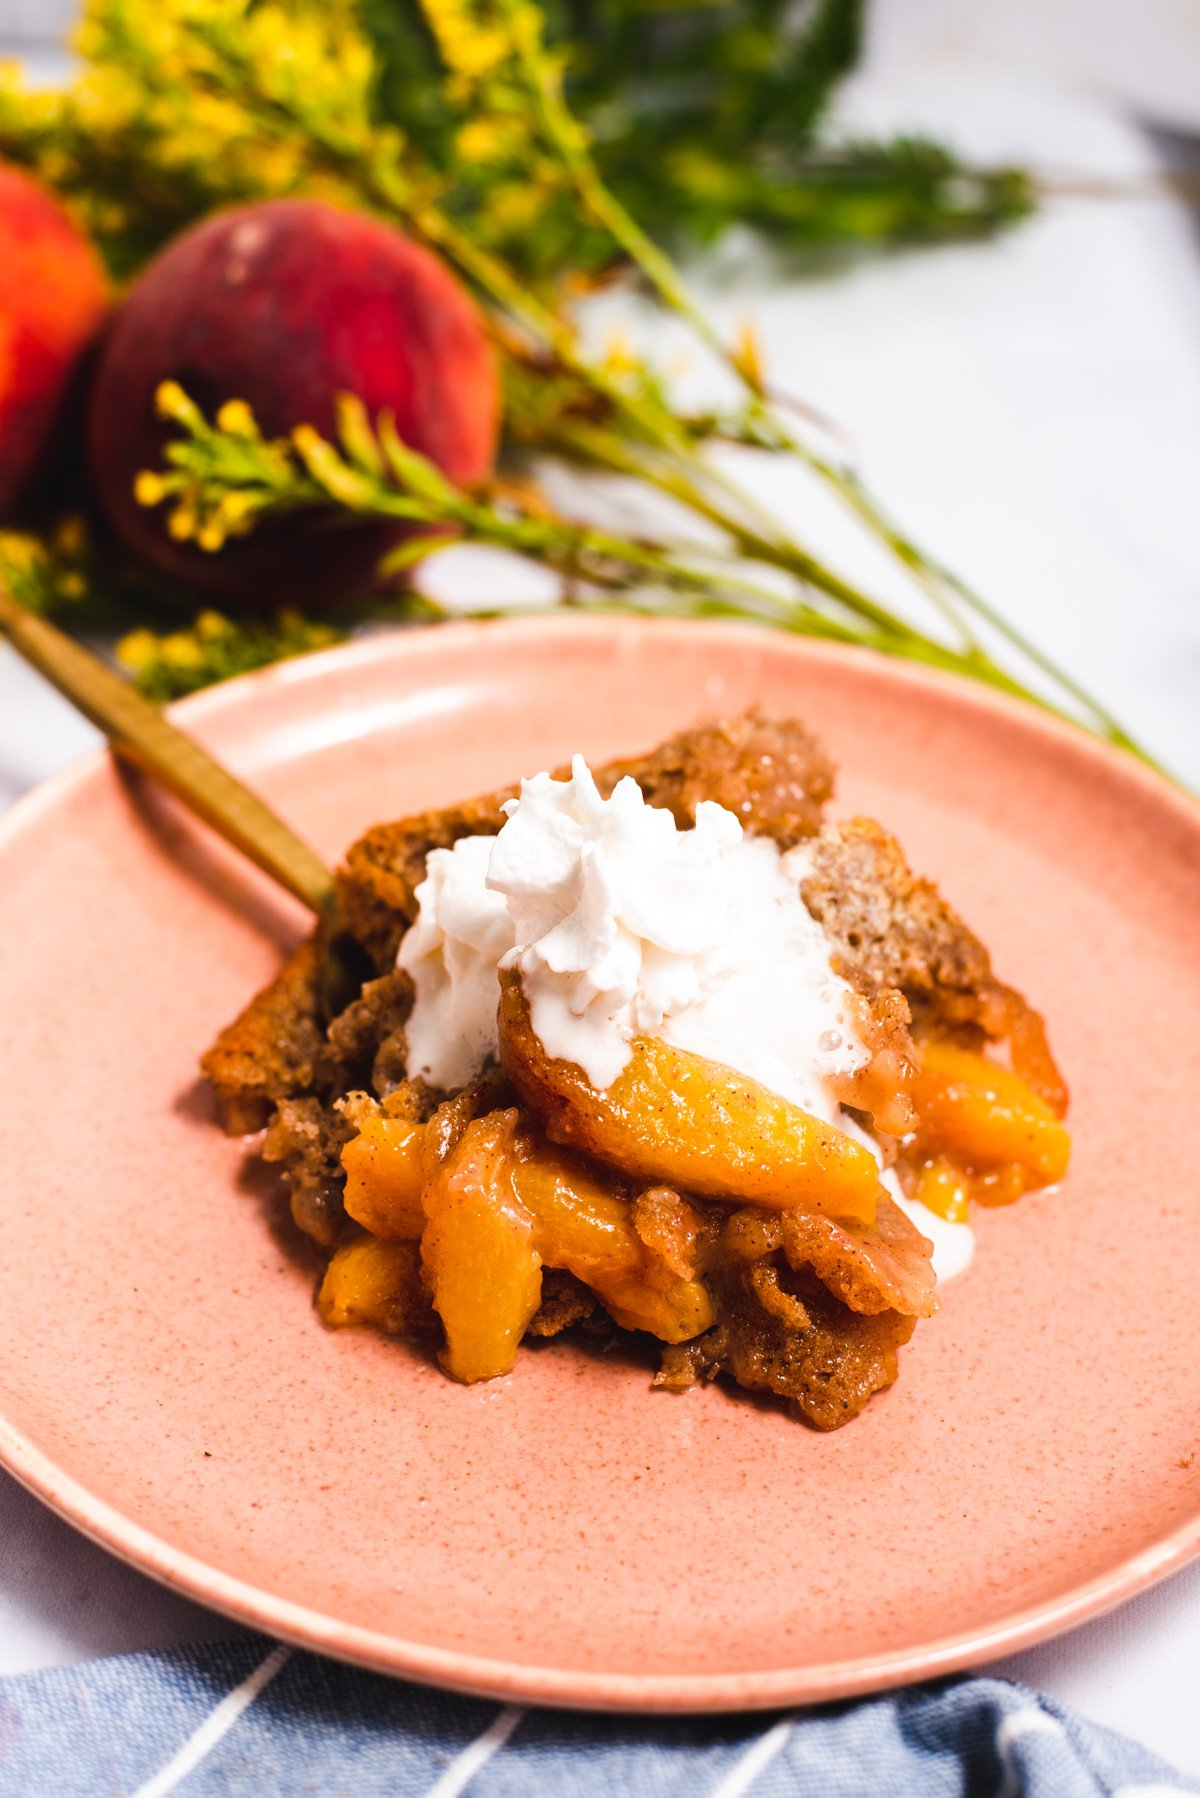 Serving of peach cobbler topped with whipped cream on a pink plate